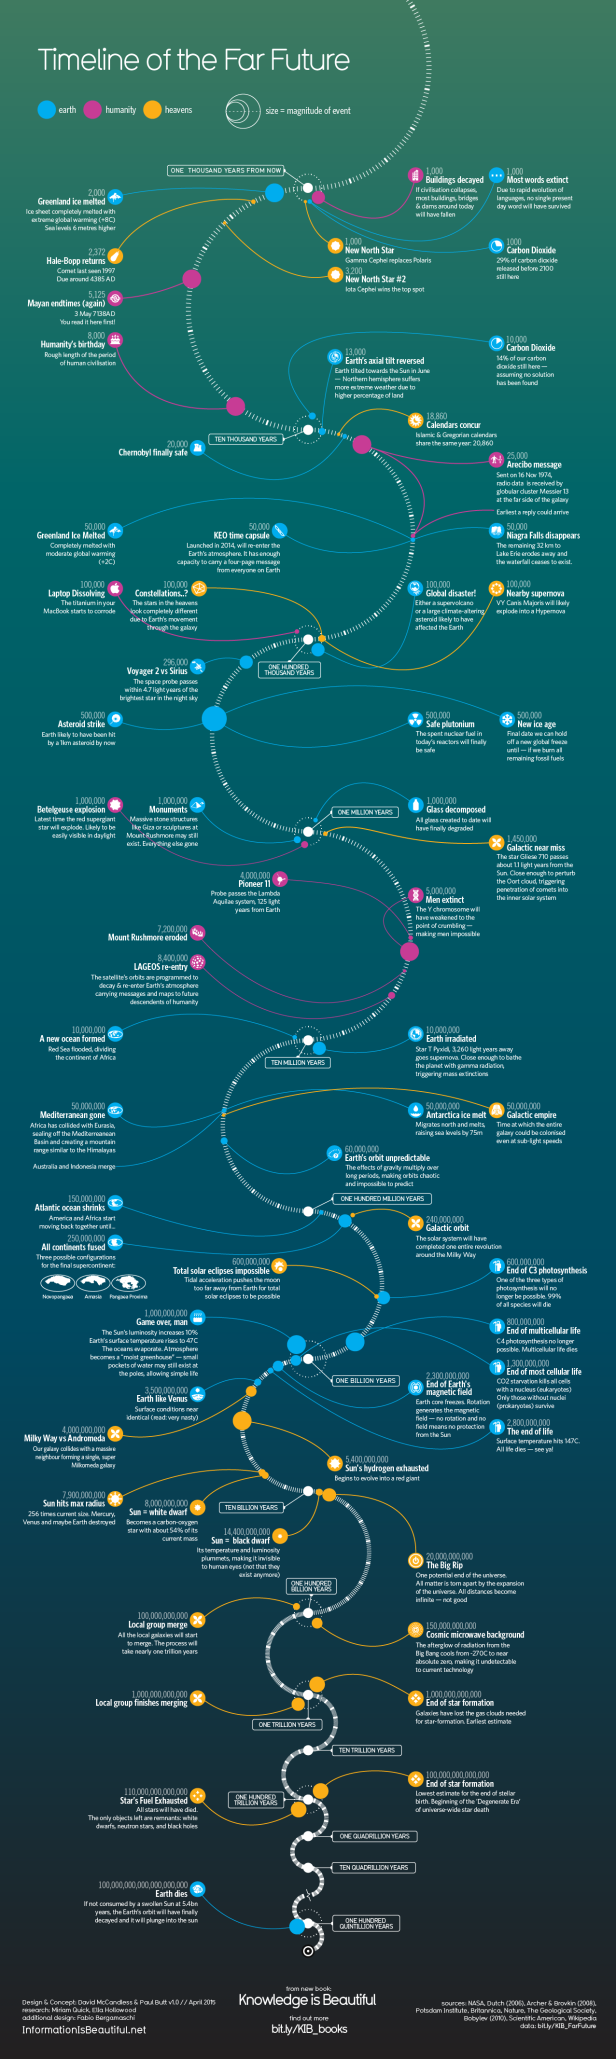 1276_Timeline-of-the-Far-Future_May2015